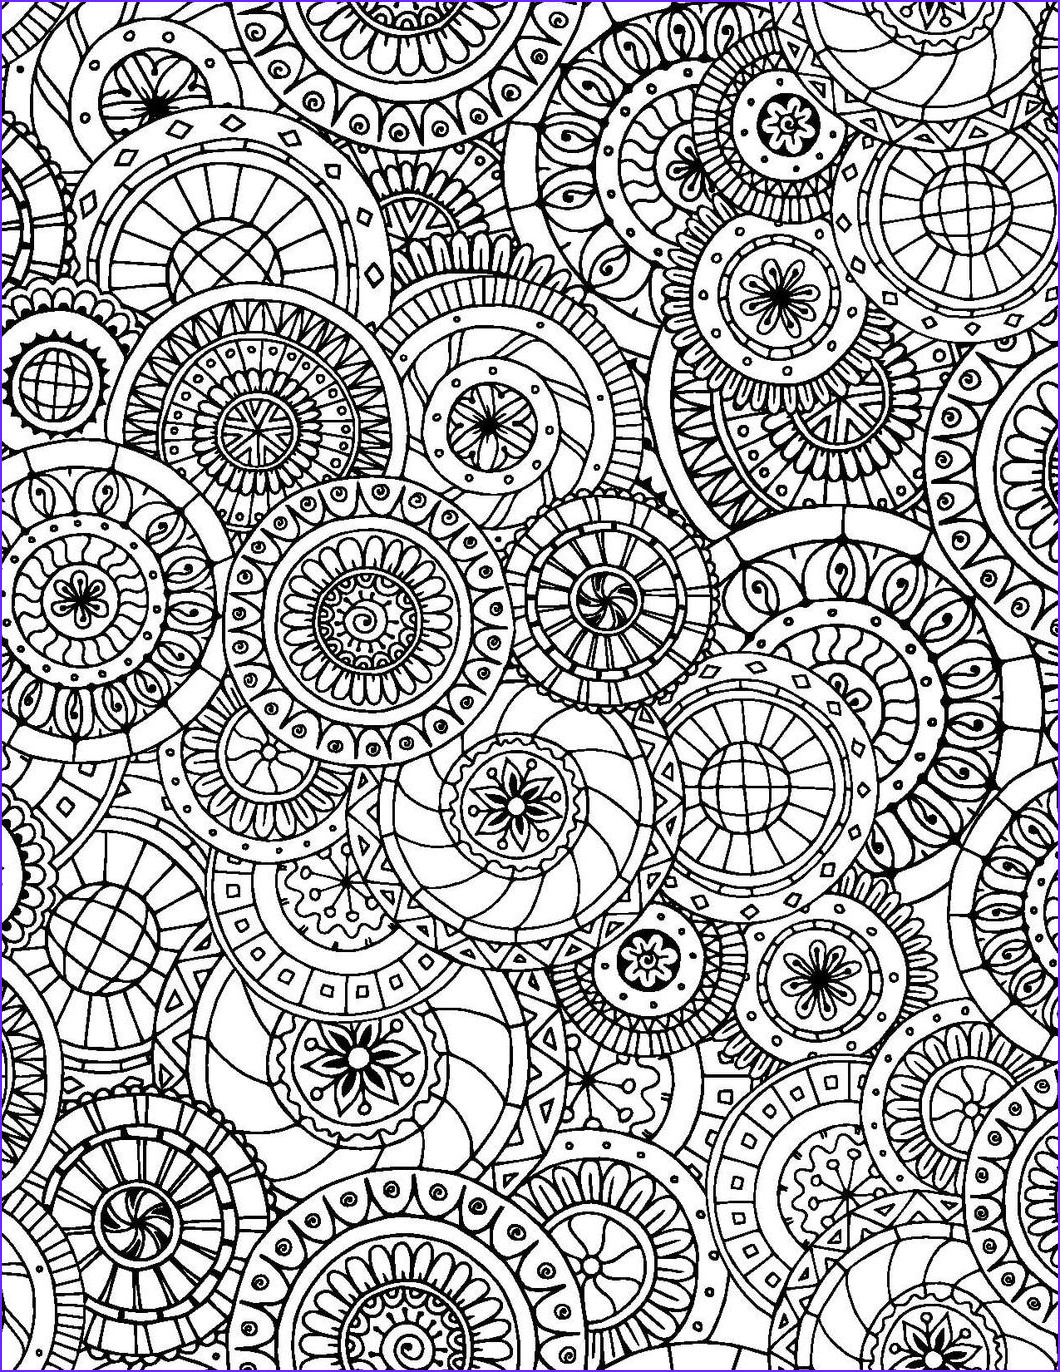 Color Art Coloring Book Luxury Collection Geometric Designs for Adults who Color Live Your Life In